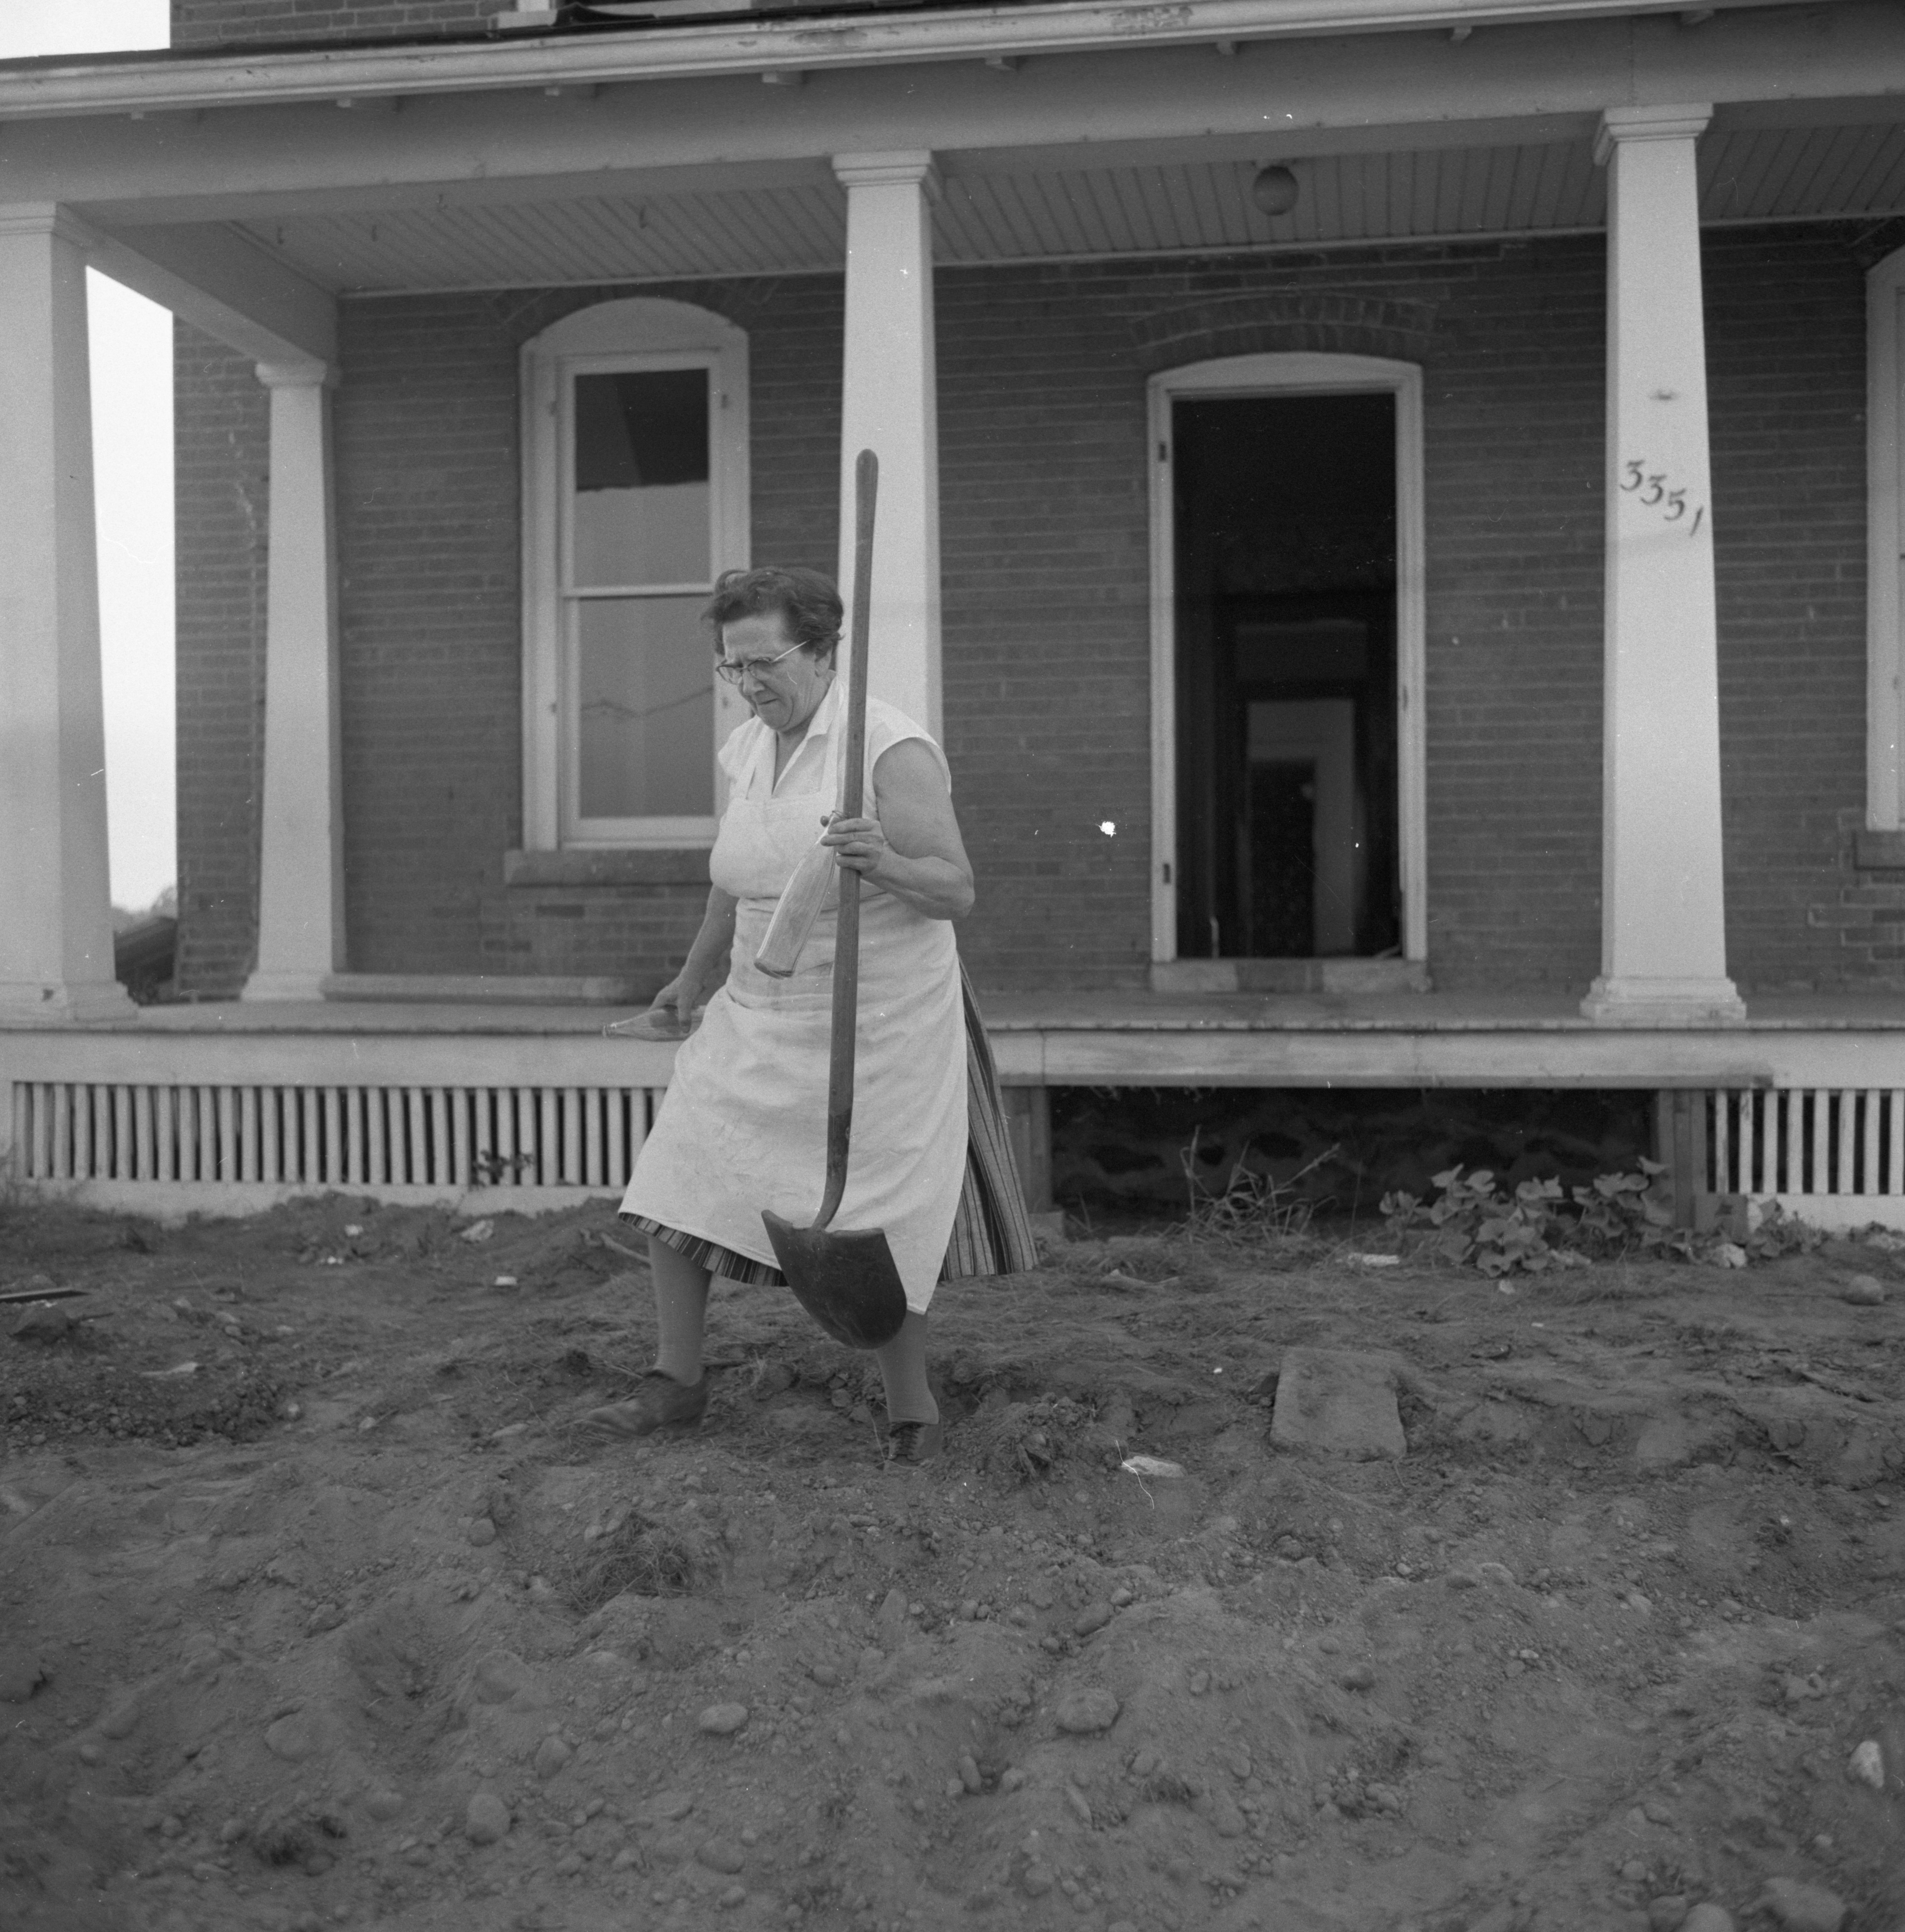 Salvaging Items From The Kappler Home At 3351 Pontiac Road, July 1961 image